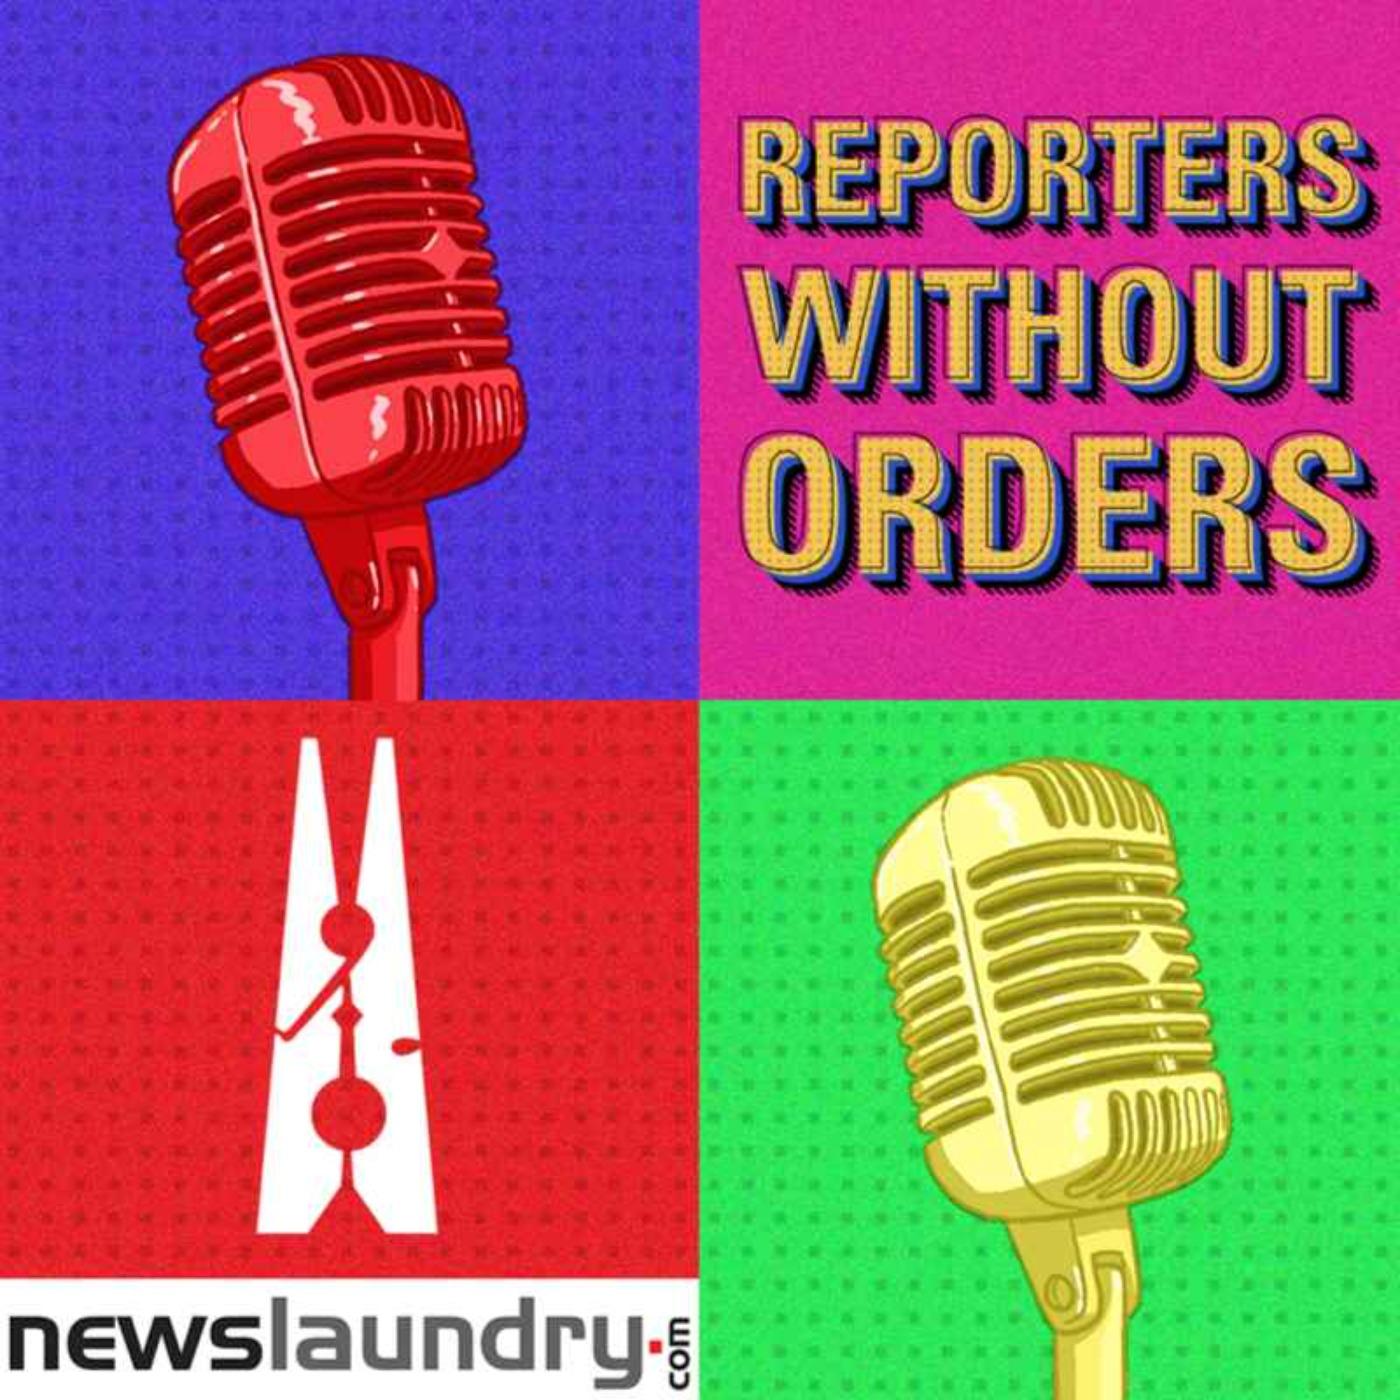 Reporters Without Orders Ep 161: Assam election and perils of Whatsapp forwards